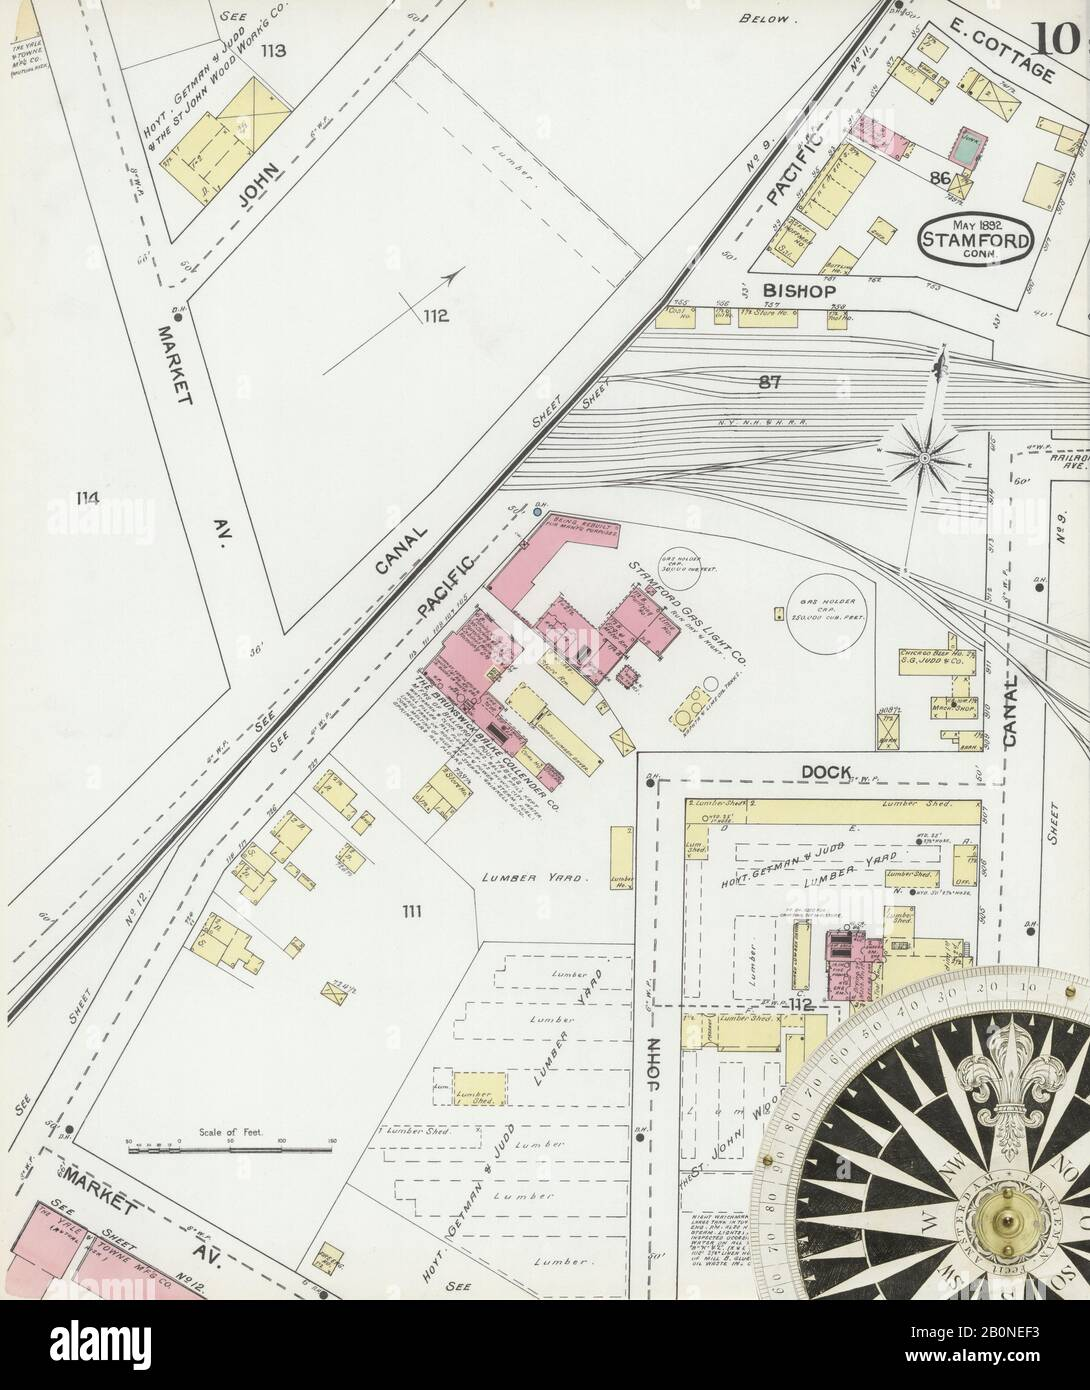 Image 10 of Sanborn Fire Insurance Map from Stamford, Fairfield County, Connecticut. May 1892. 17 Sheet(s), America, street map with a Nineteenth Century compass Stock Photo